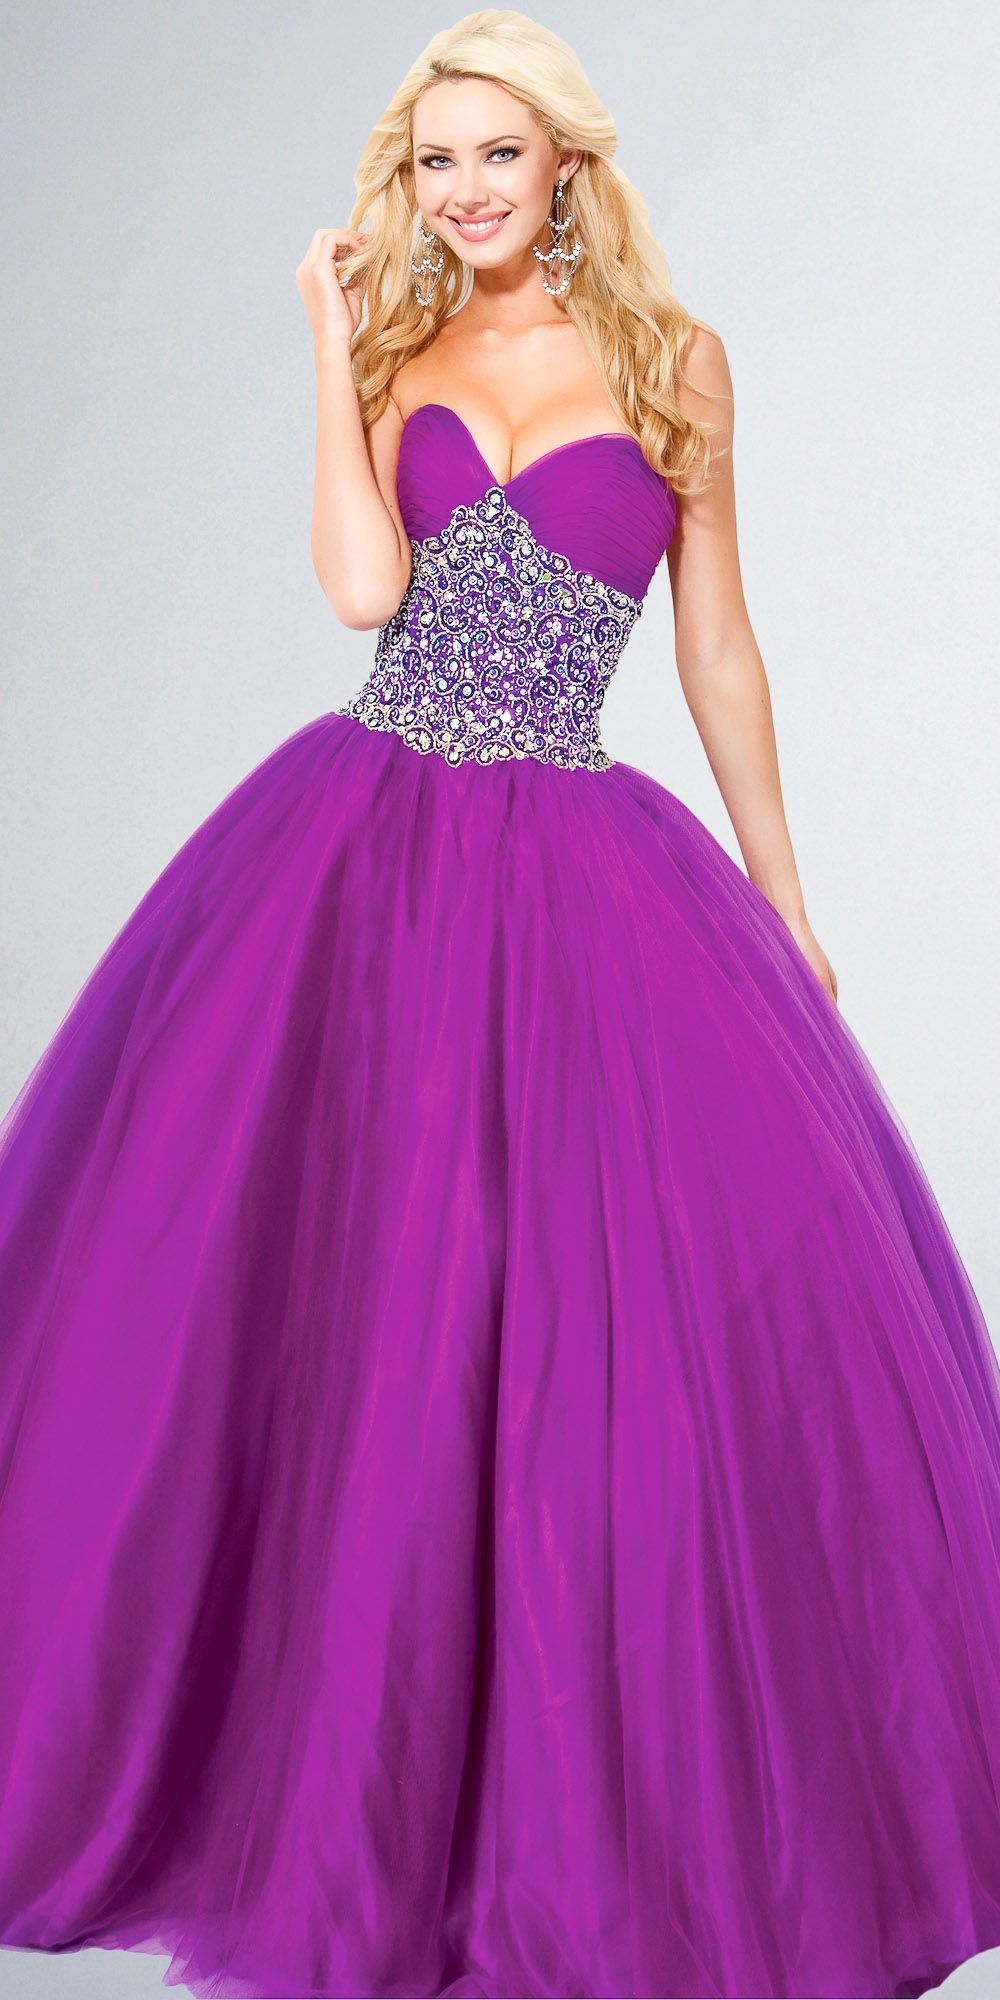 Strapless Ball Gown | Playing dress up! | Pinterest | Trajes ...